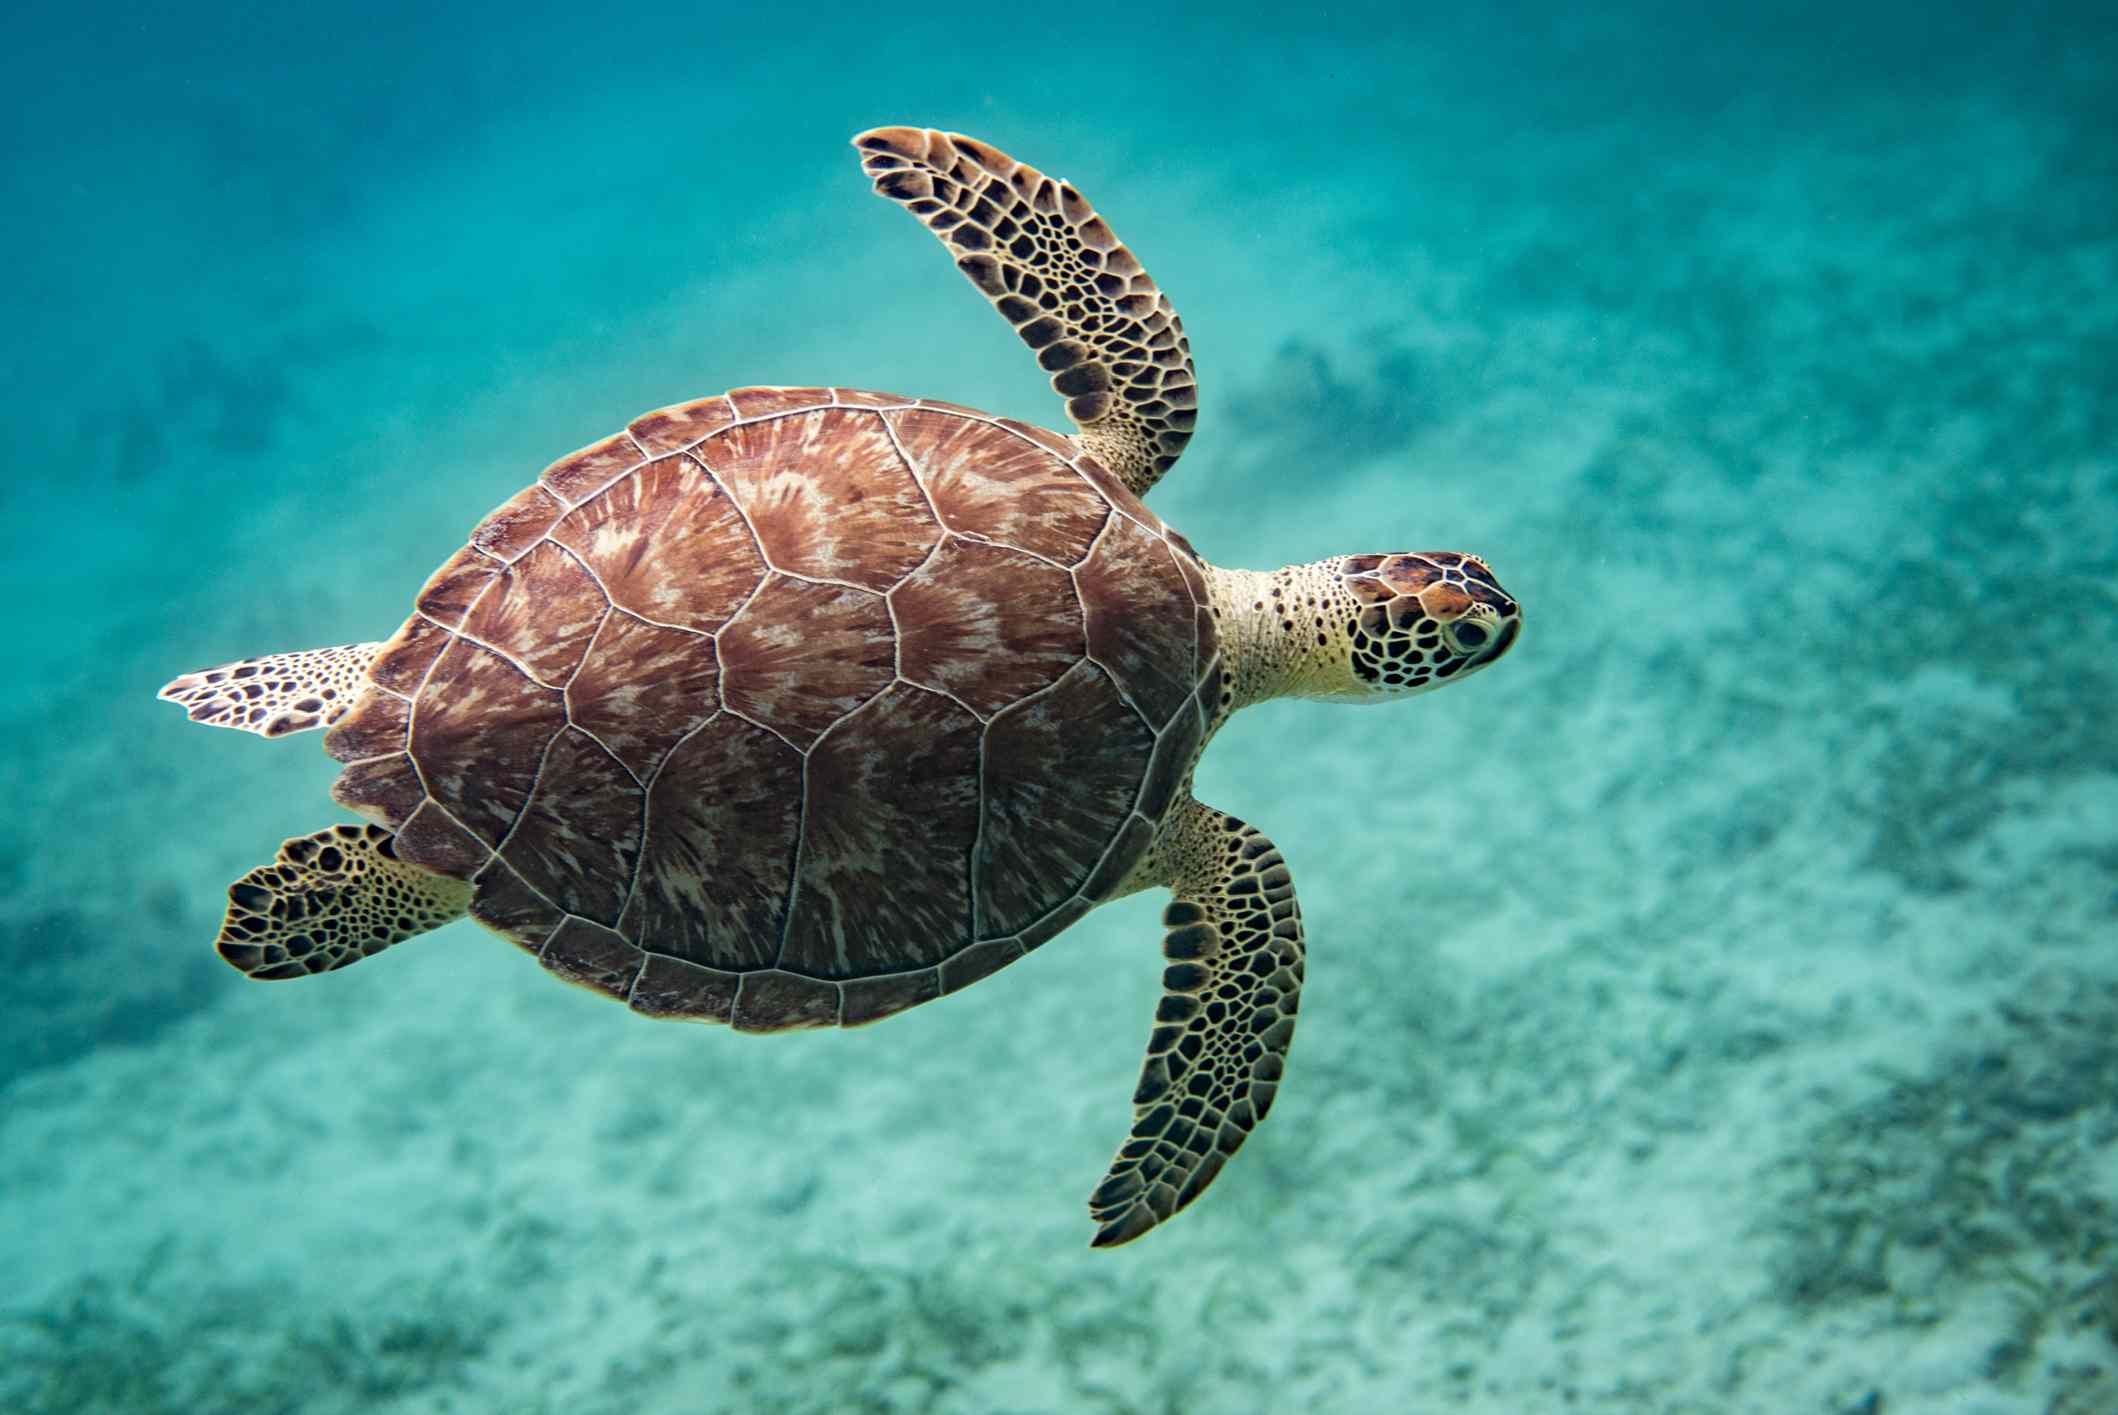 overhead video of green sea turtle swimming underwater, showing brown shell